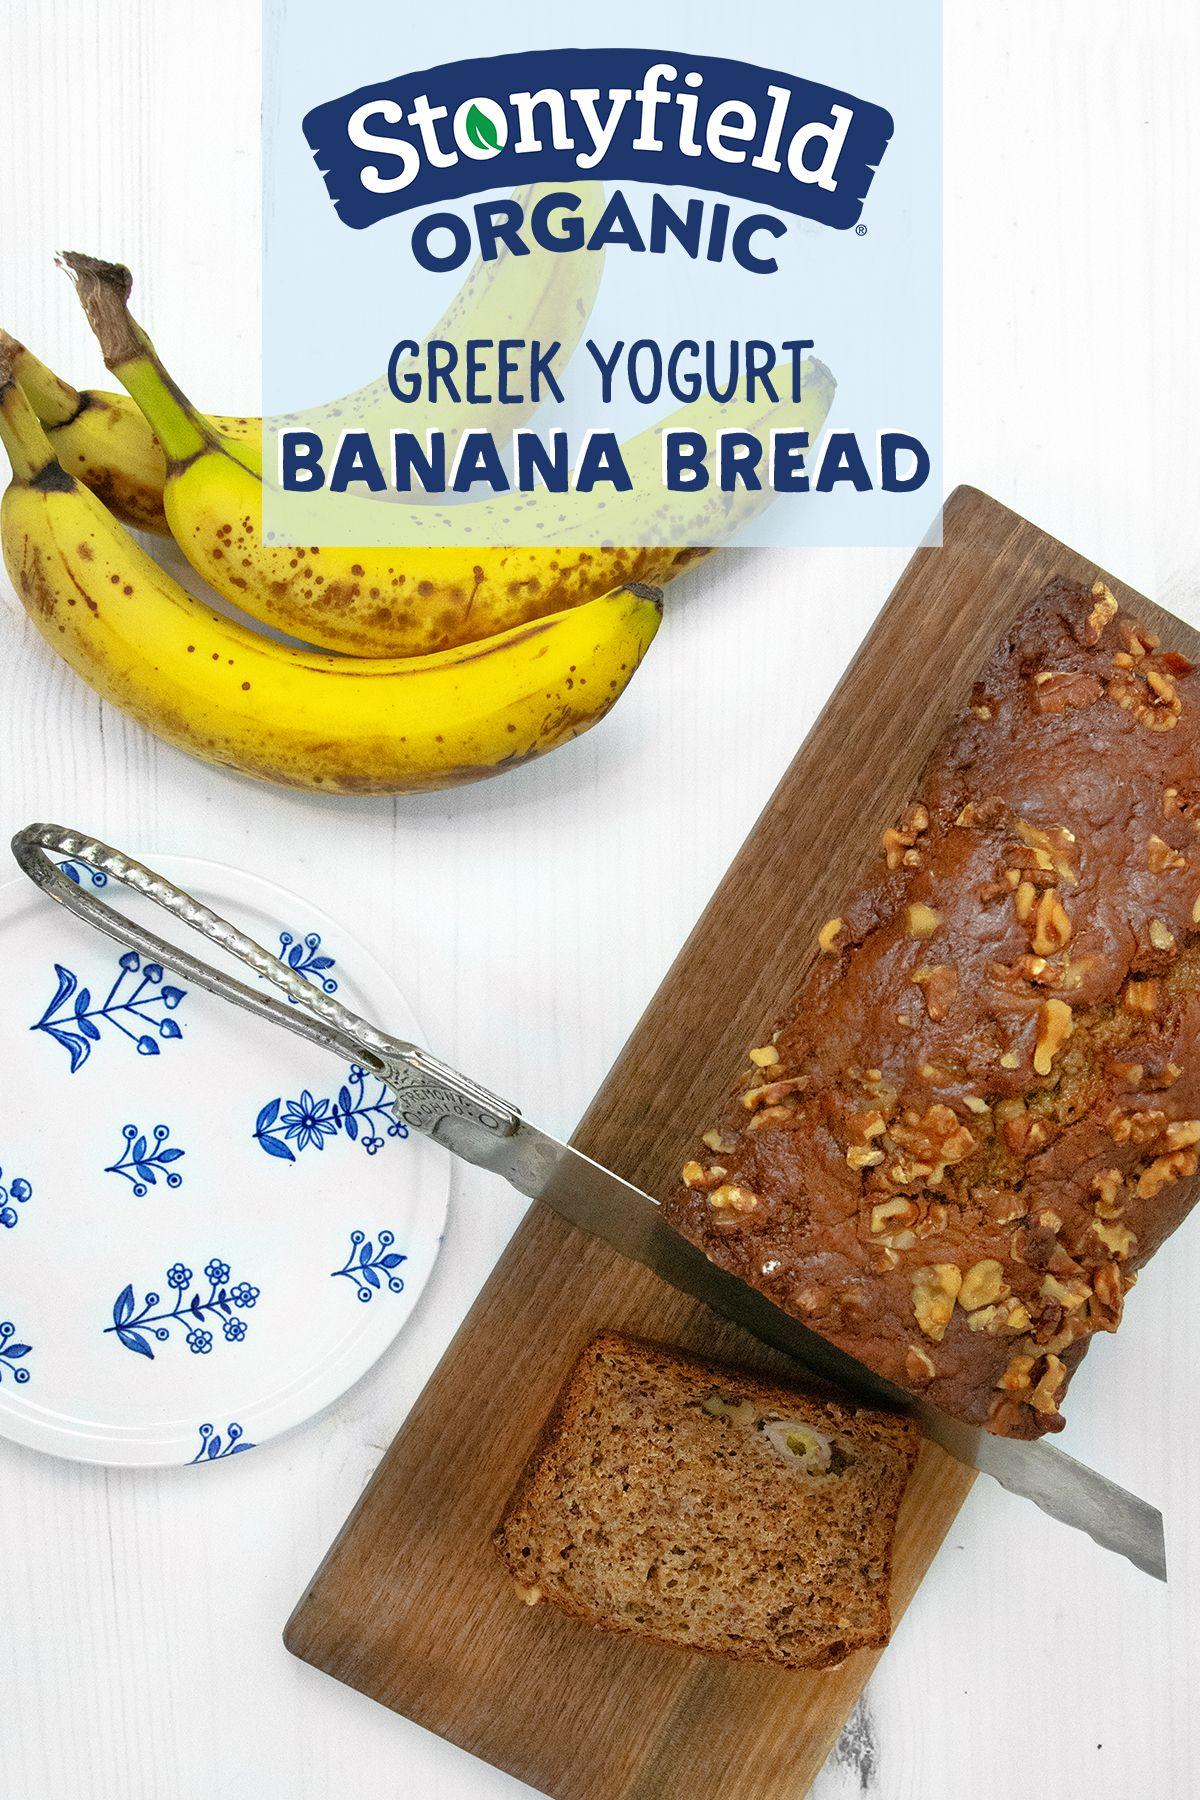 Greek Yogurt Banana Bread Recipe Stonyfield Yogurt Banana Bread Greek Yogurt Banana Bread Greek Yogurt Recipes